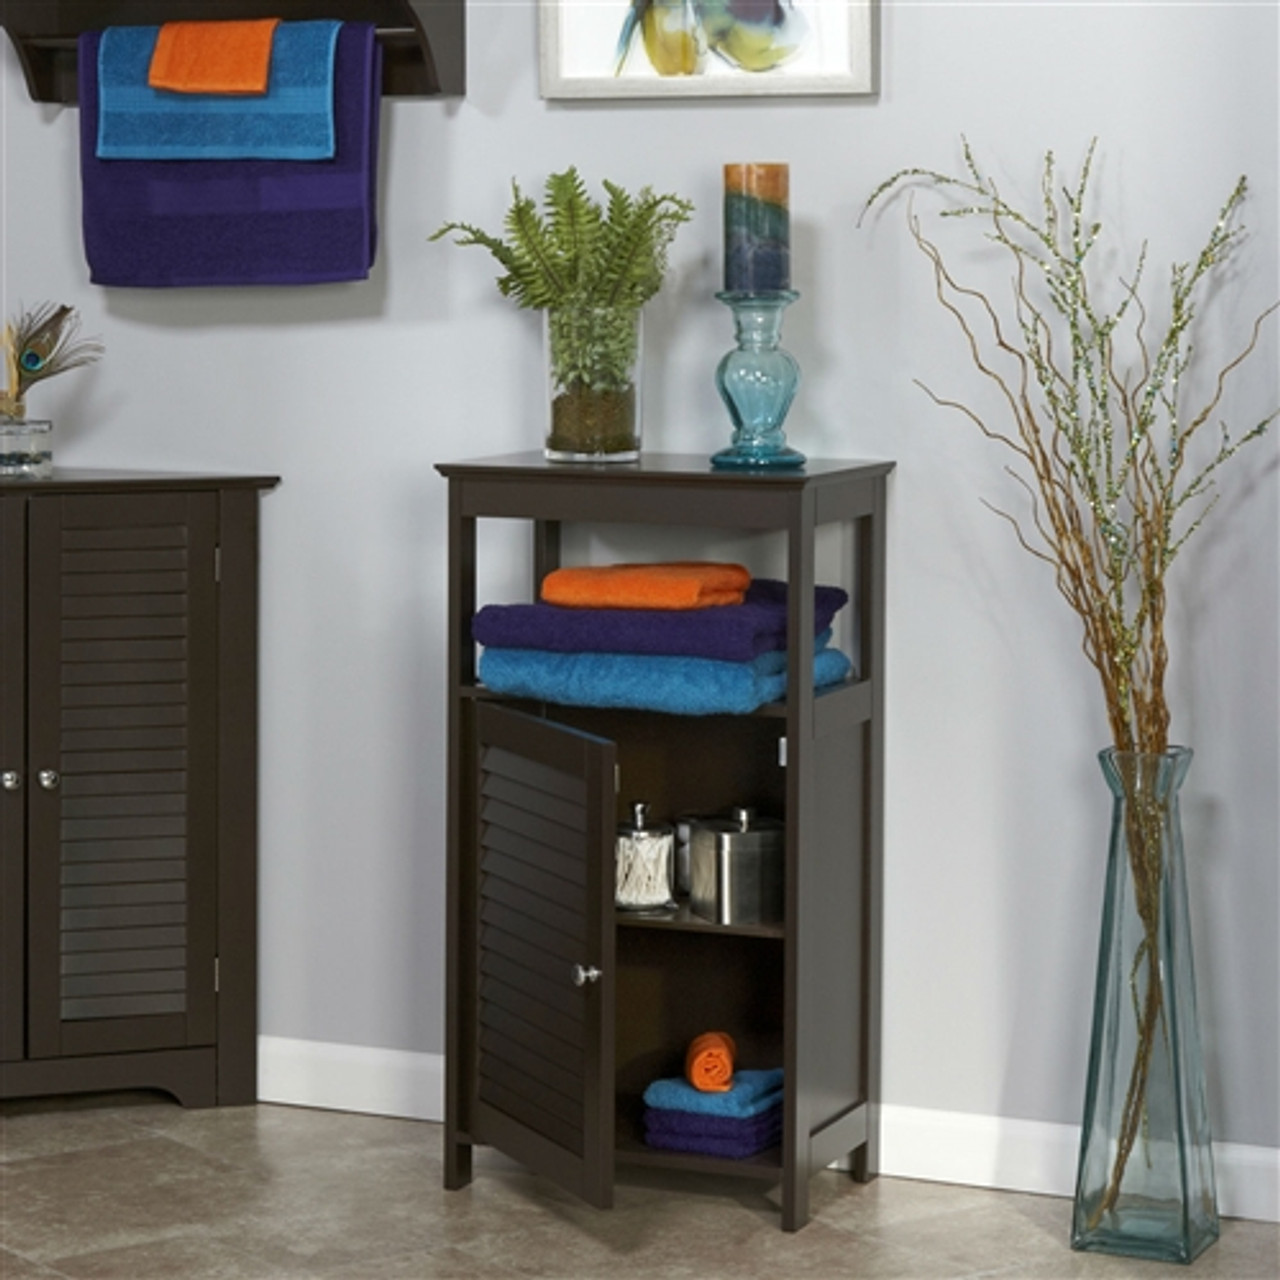 Modern Bathroom Floor Cabinet Free Standing Storage Unit In Espresso Wood Finish Exquisite Furniture